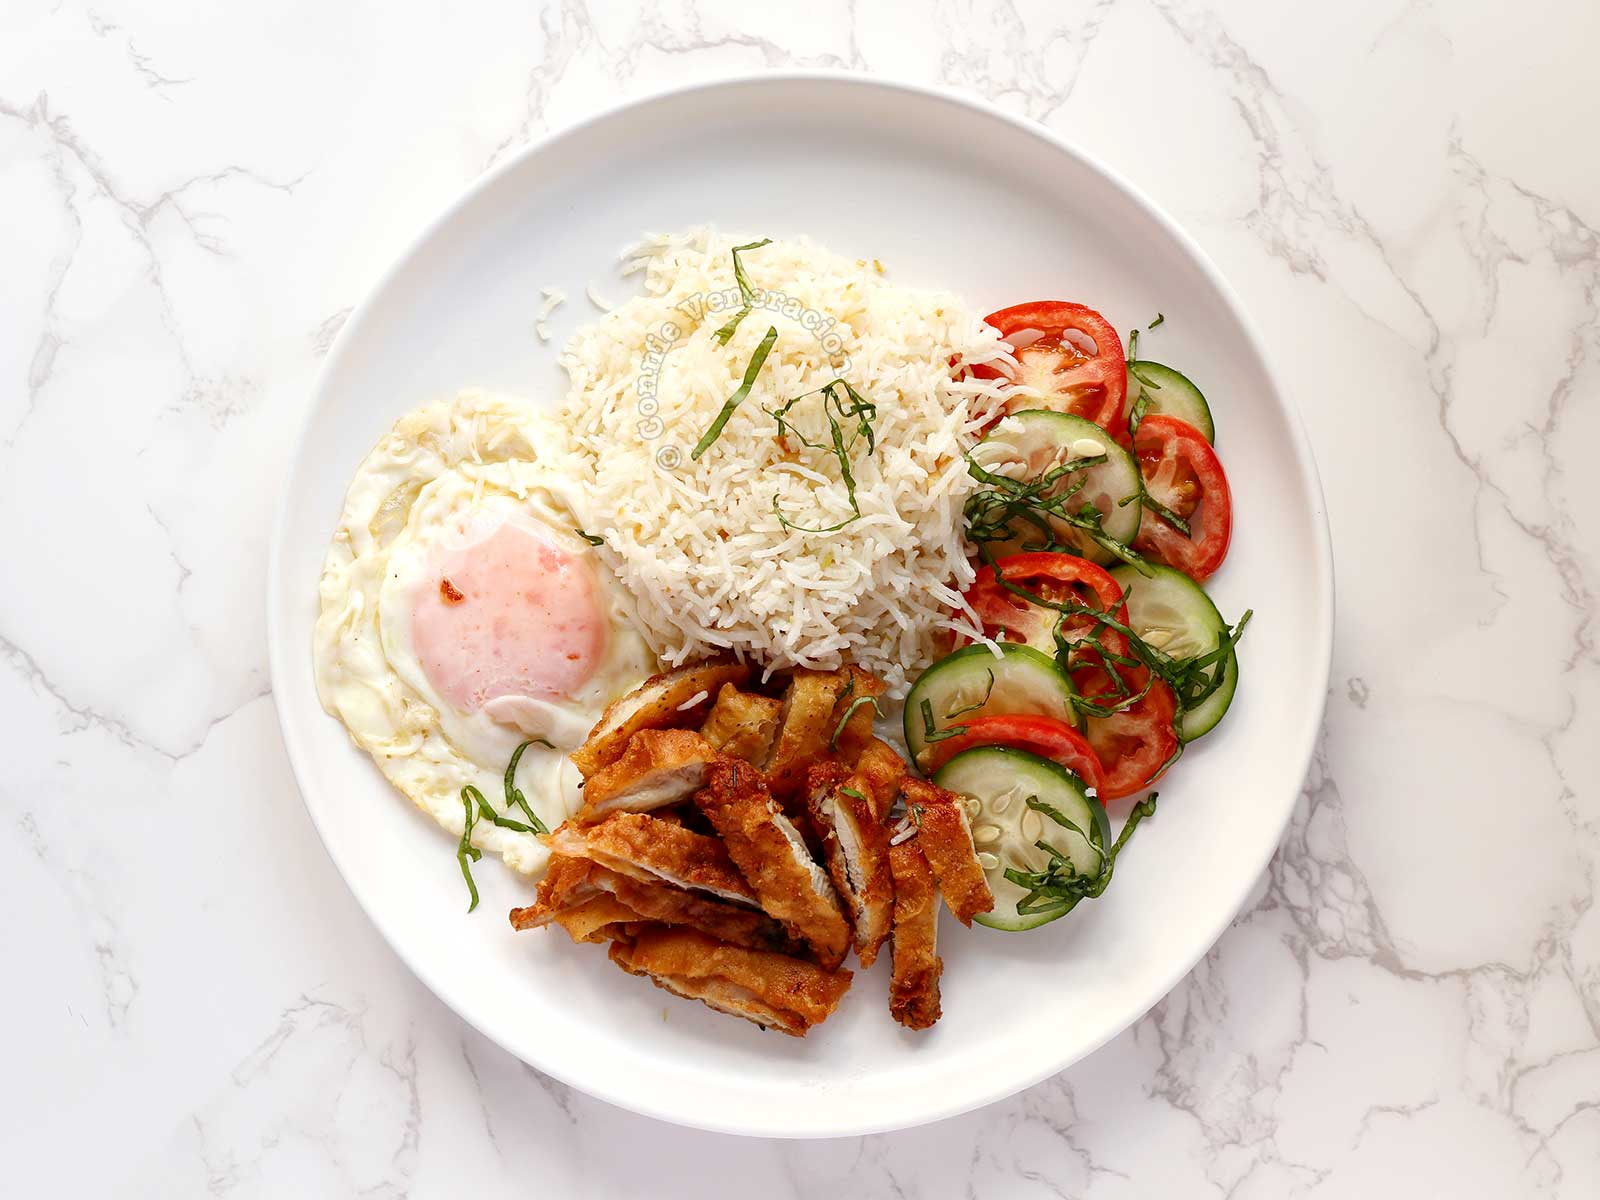 Chiksilog (Fried Chicken, Fried Rice and Egg)